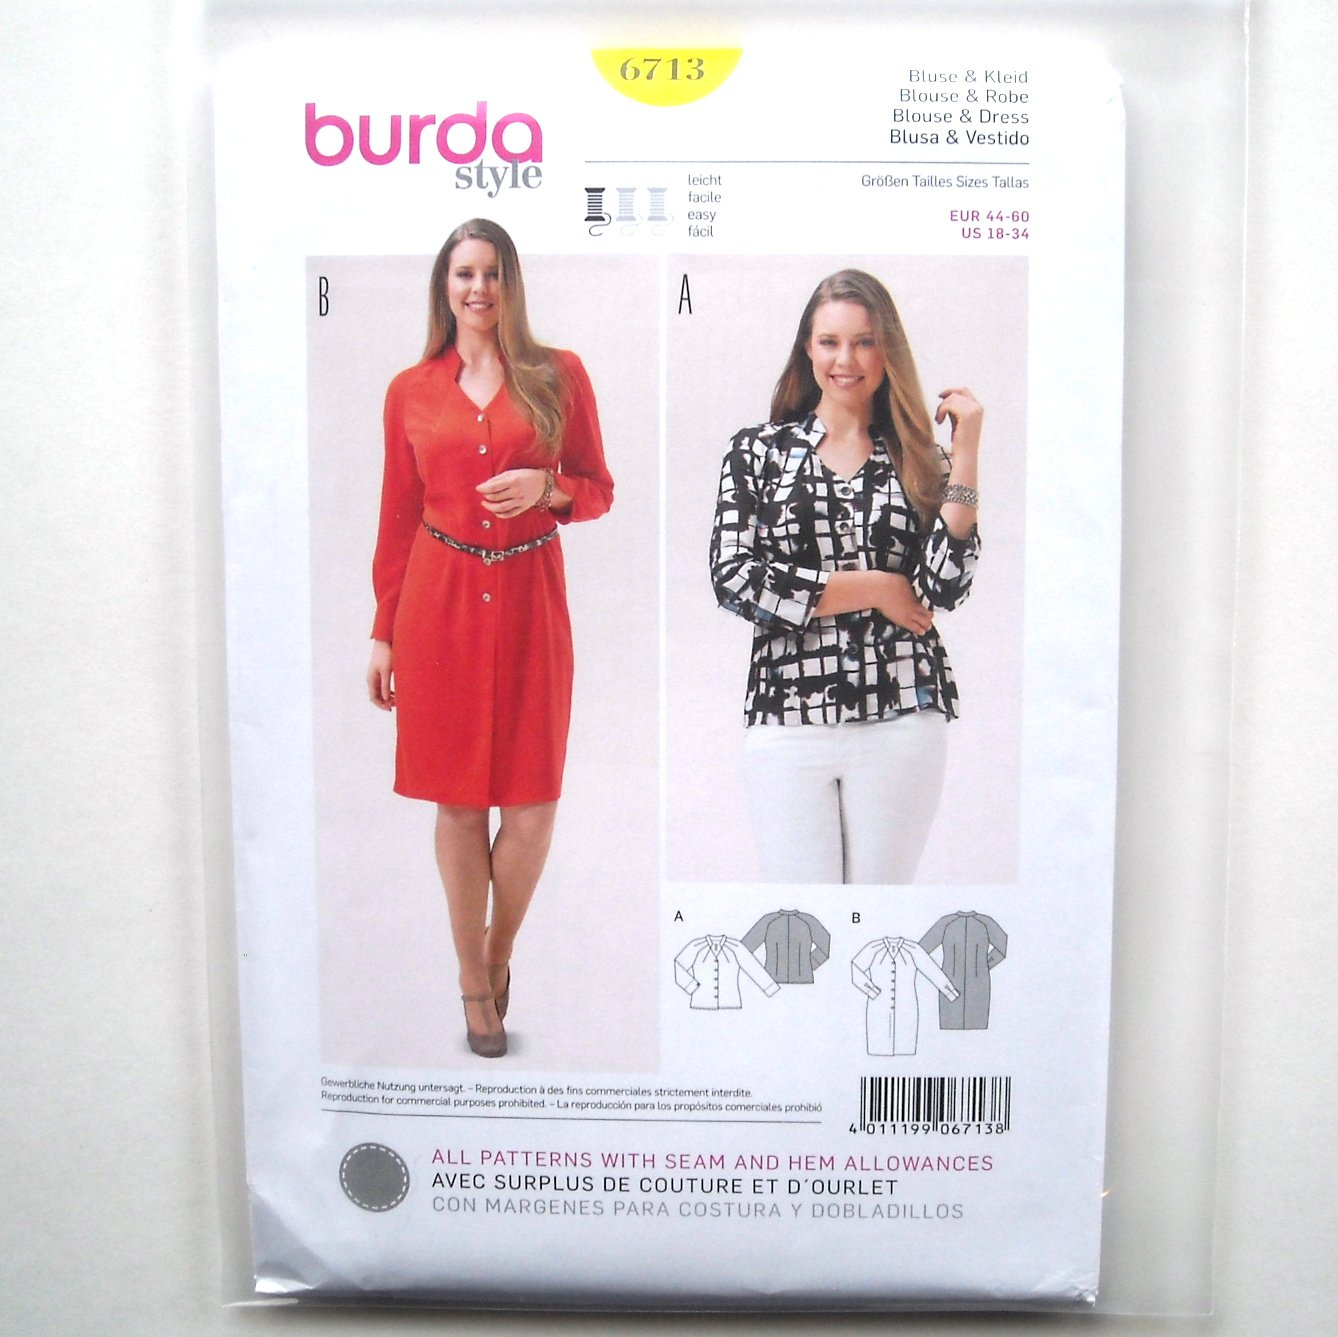 Womens Misses Blouse Dress 18 - 34 Burda Style Sewing Pattern 6713